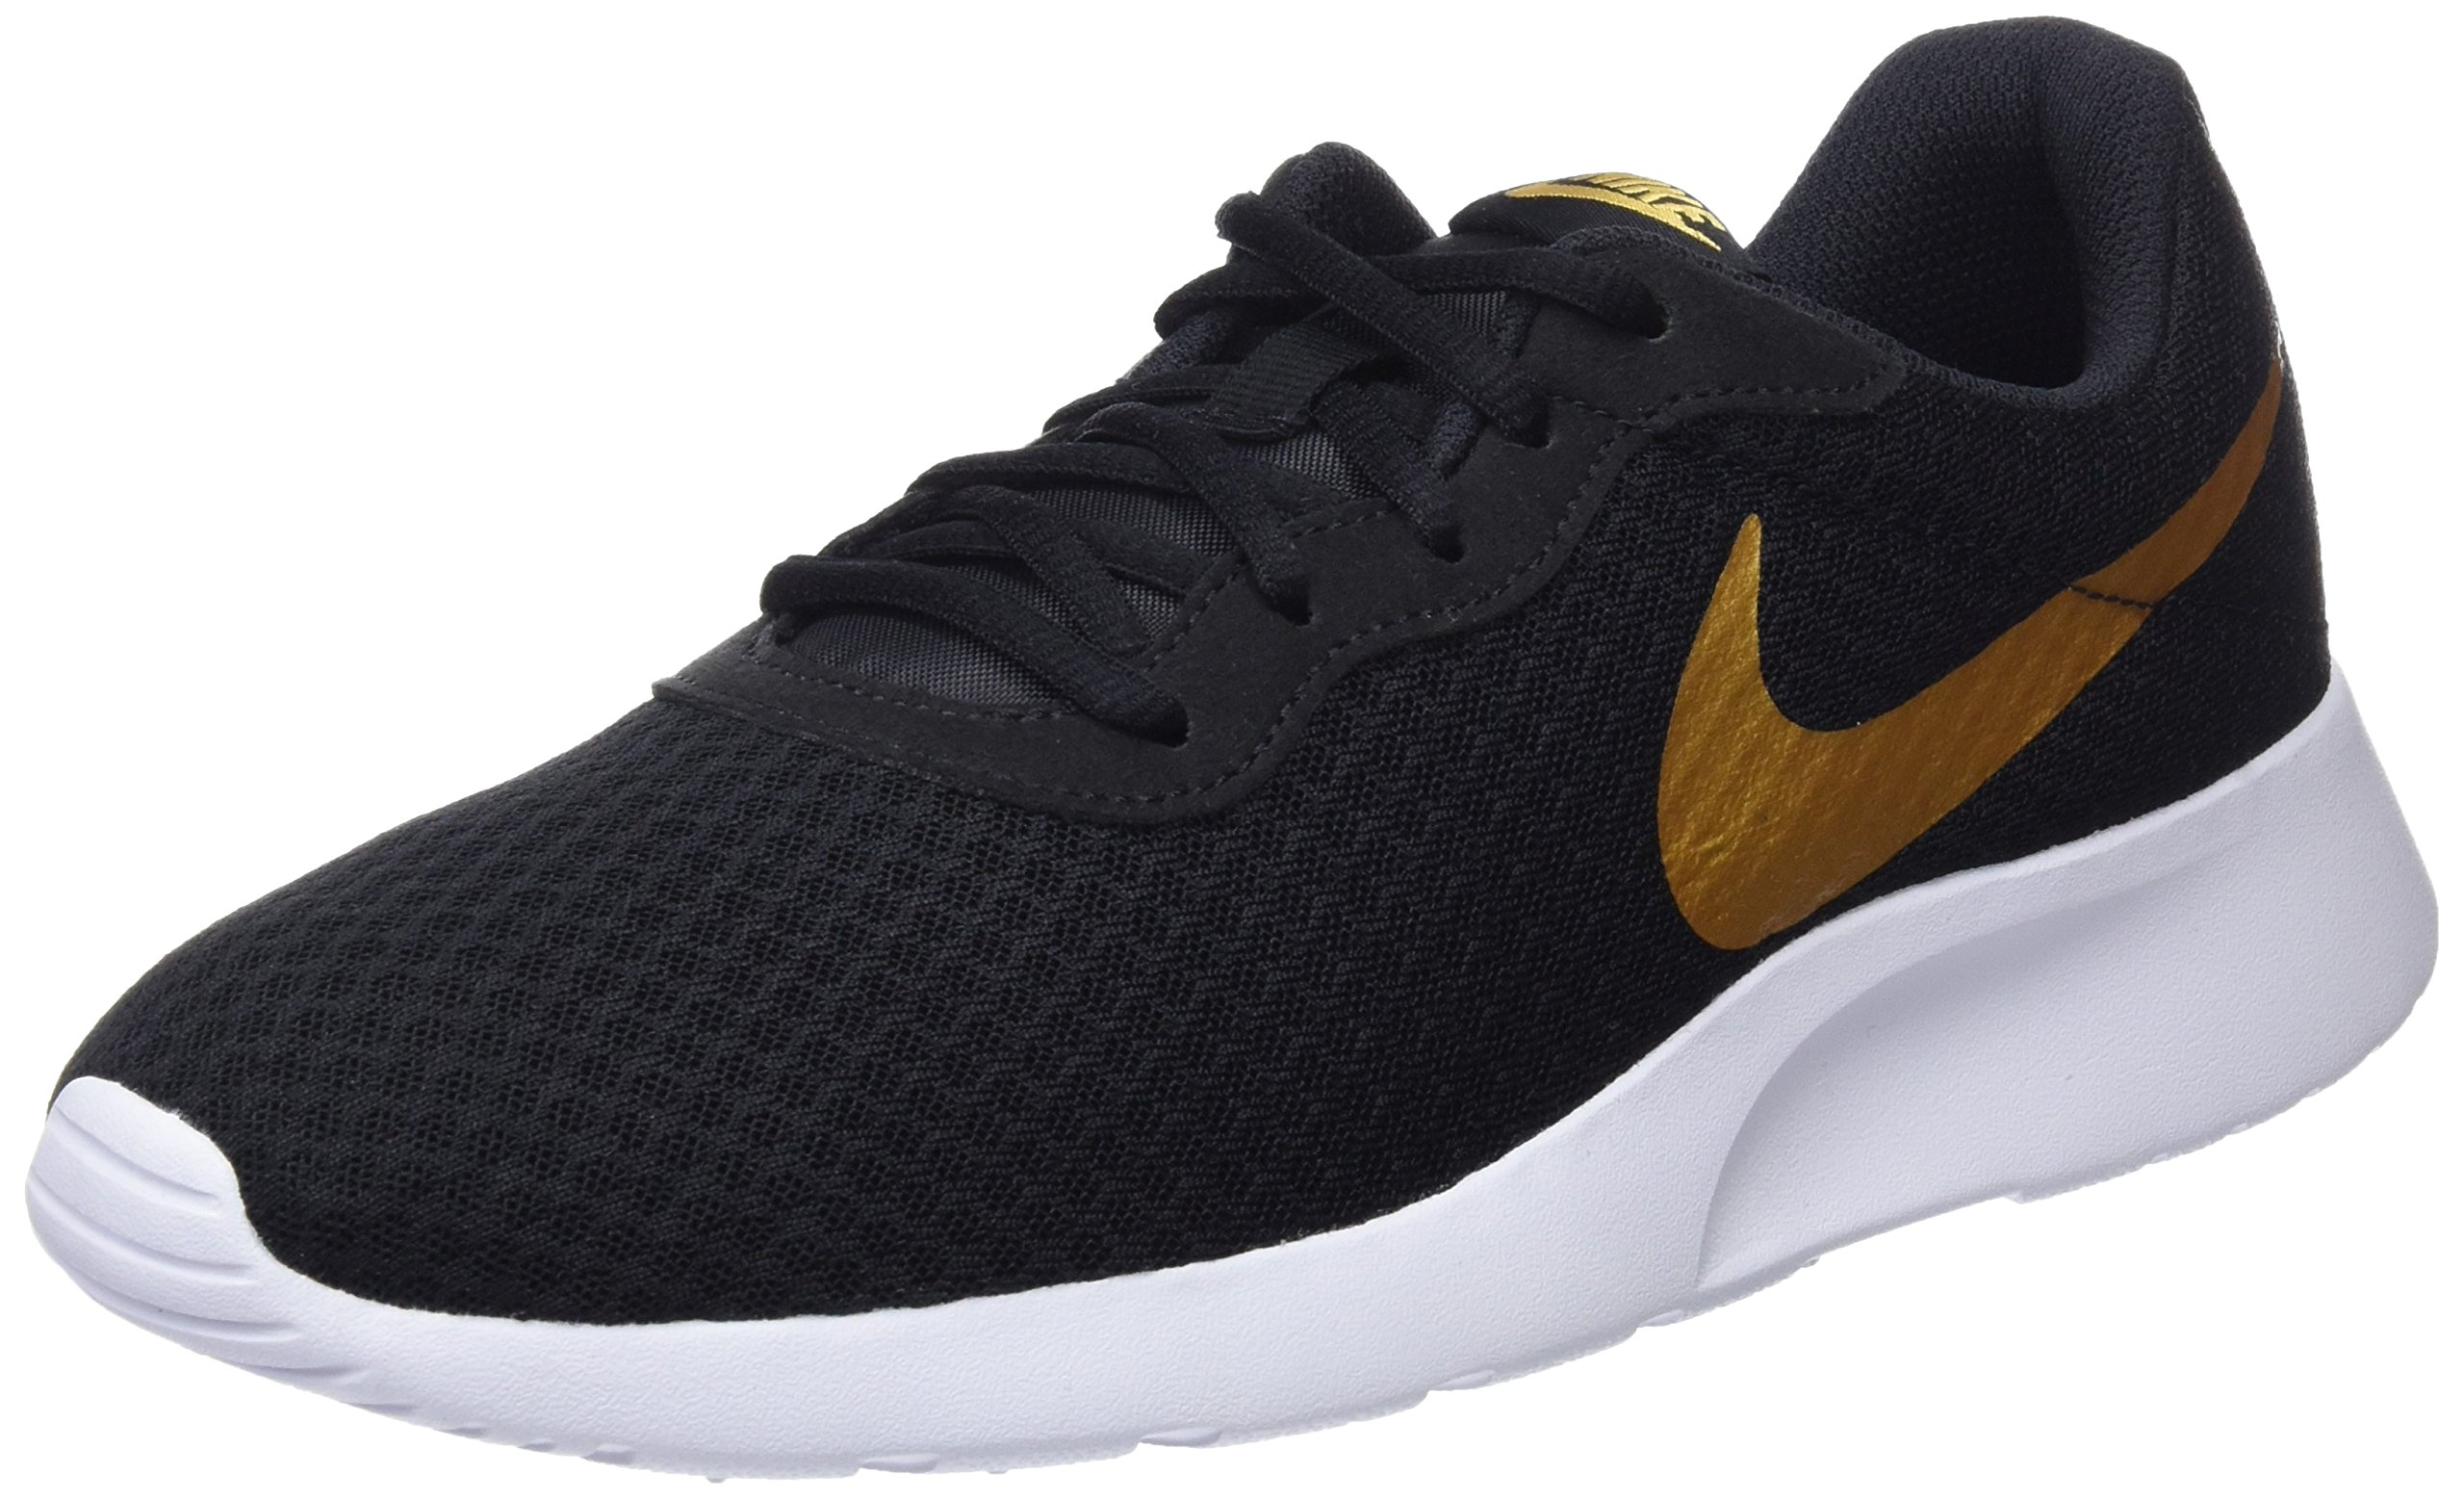 NIKE Women's Tanjun Black/Metallic Gold Size 8 B(M) US by NIKE (Image #1)